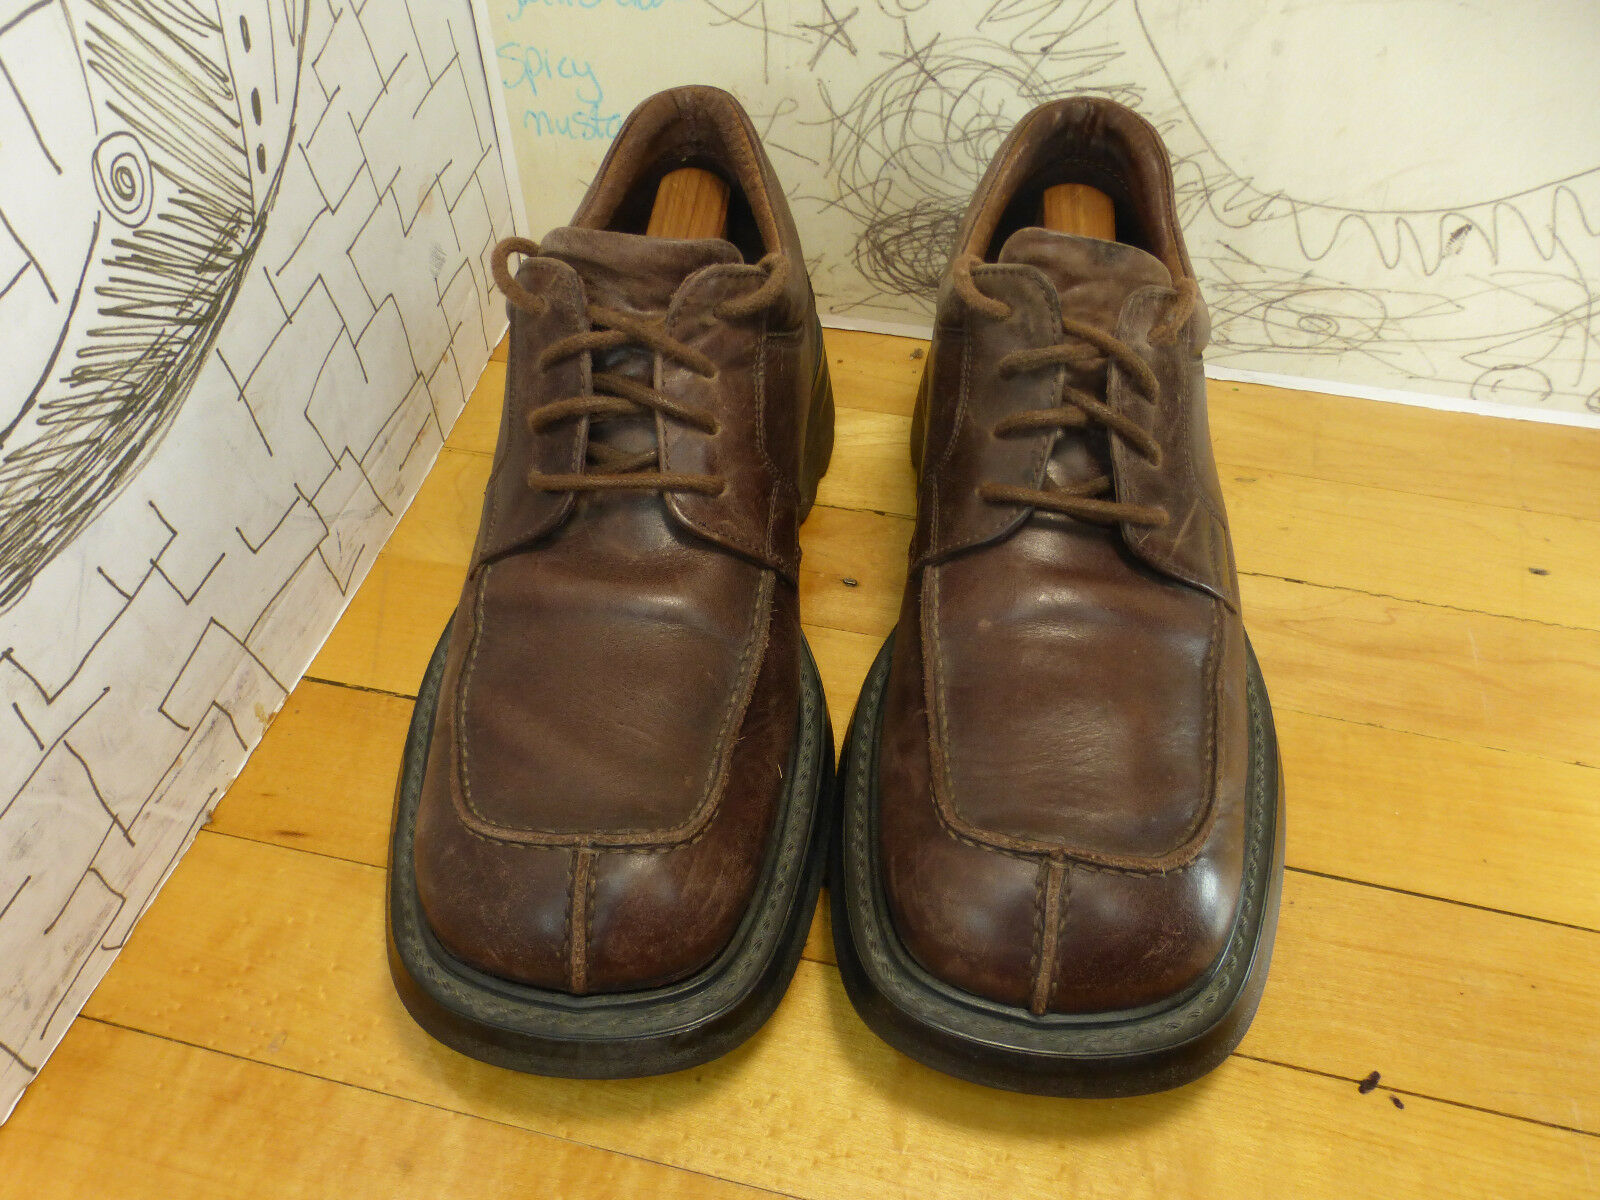 Kenneth Cole Reaction Brown Leather Oxfords Men's 9 Made in Romania